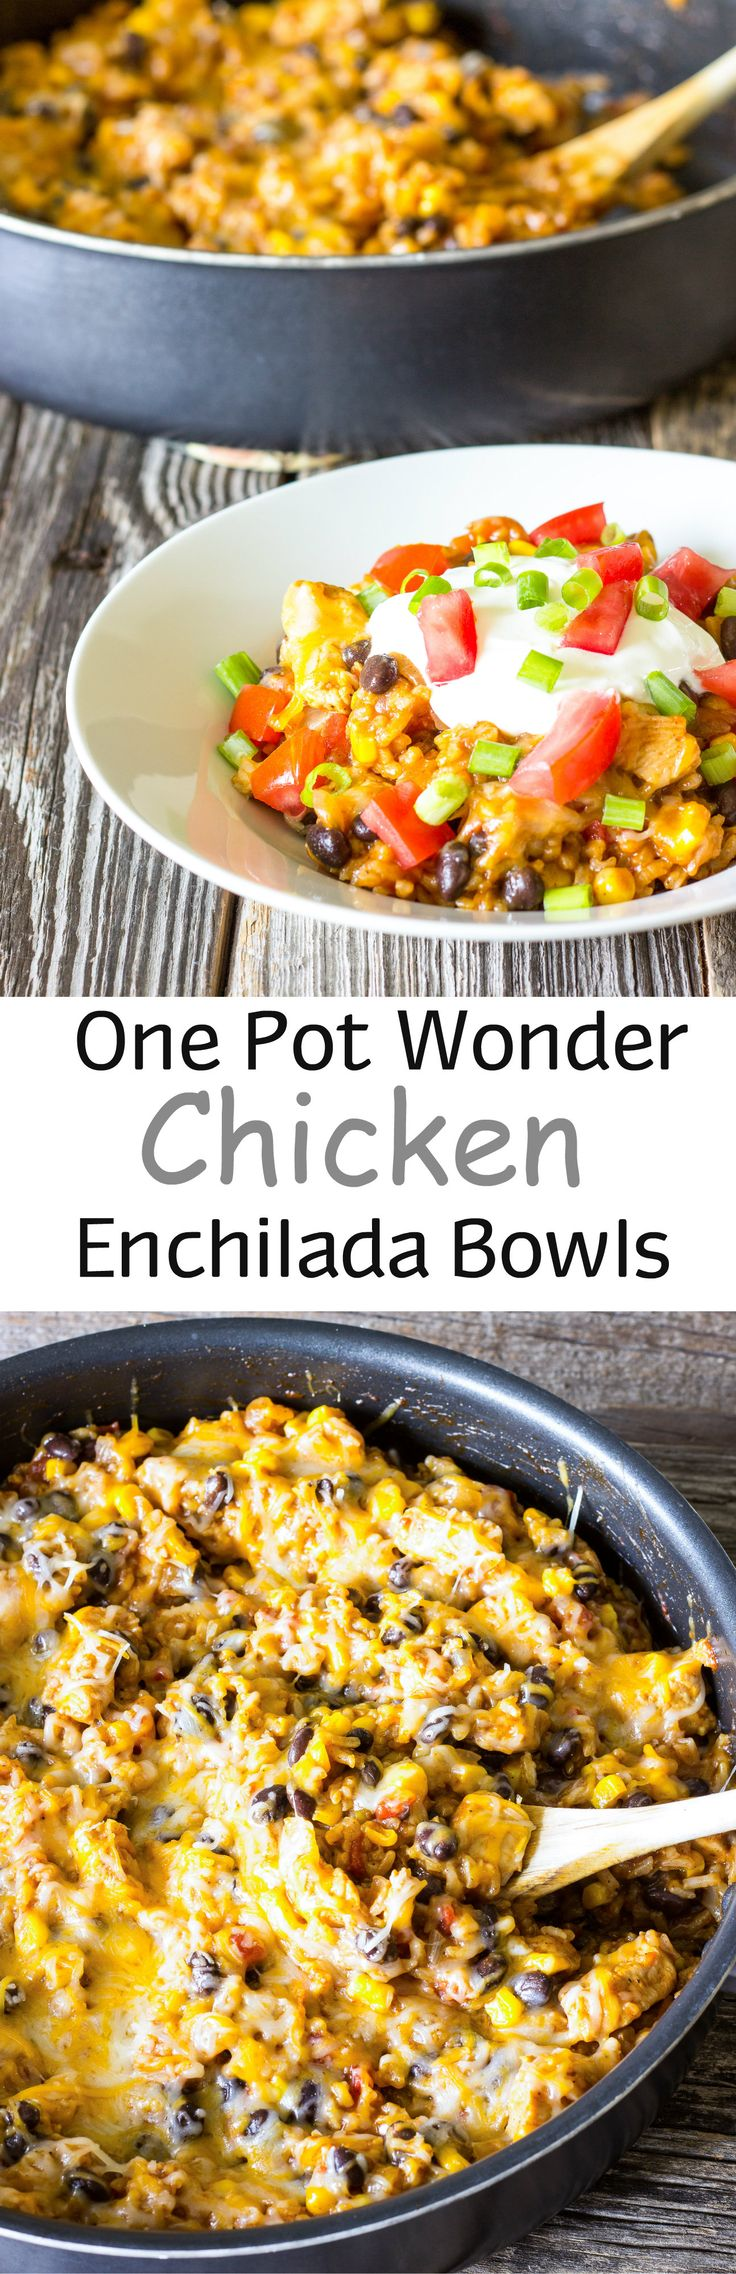 One Pot Wonder Chicken Enchilada Bowls  Ainsley devoured this.  Everyone loved it.